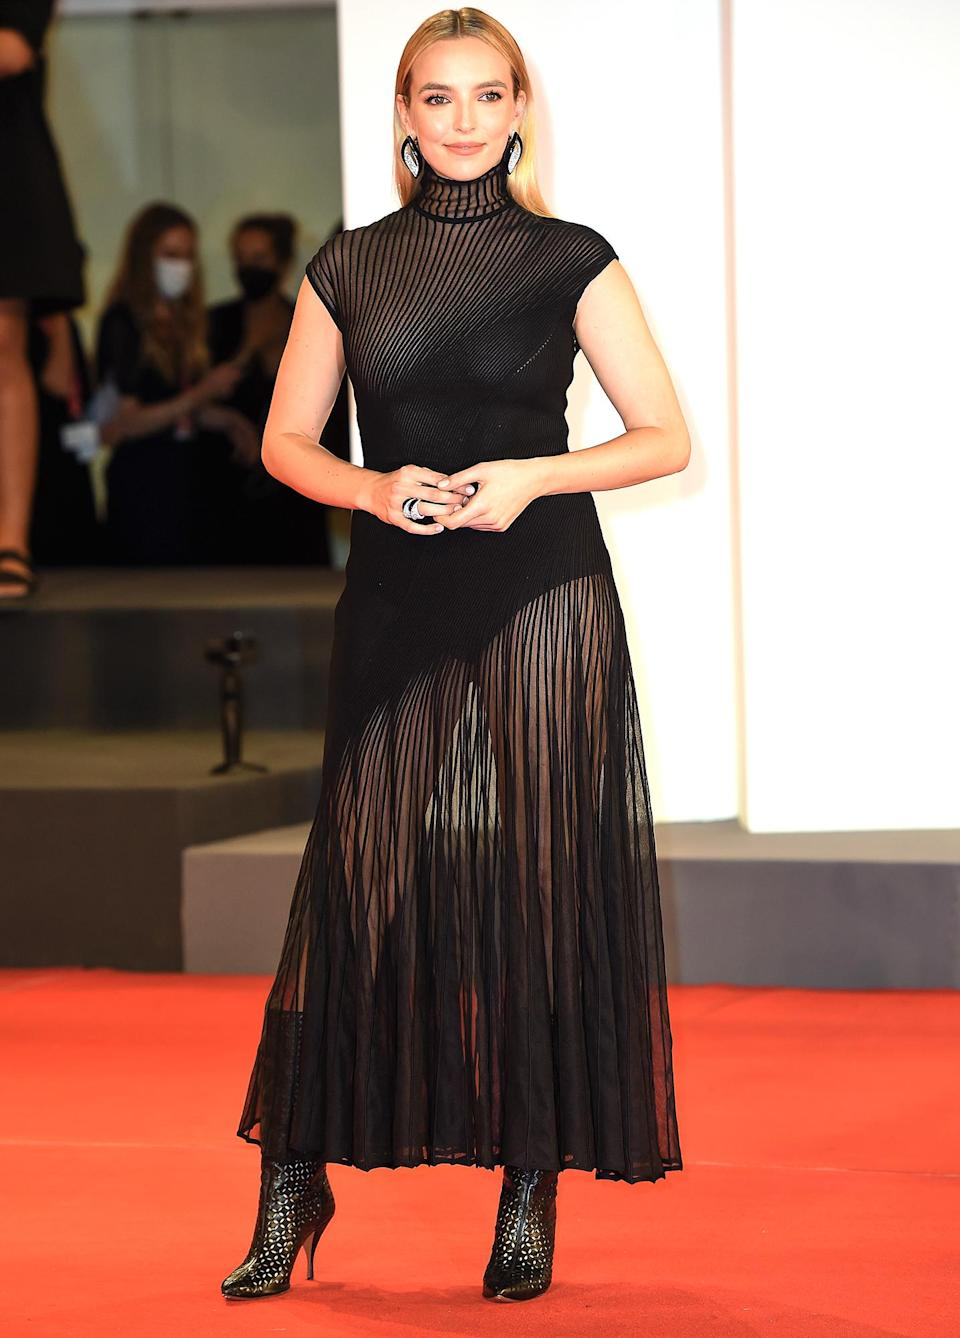 <p>Jodie Comer attends the red carpet premiere of the movie <em>The Last Duel</em> during the 78th Venice International Film Festival on Sept. 10 in Italy. </p>